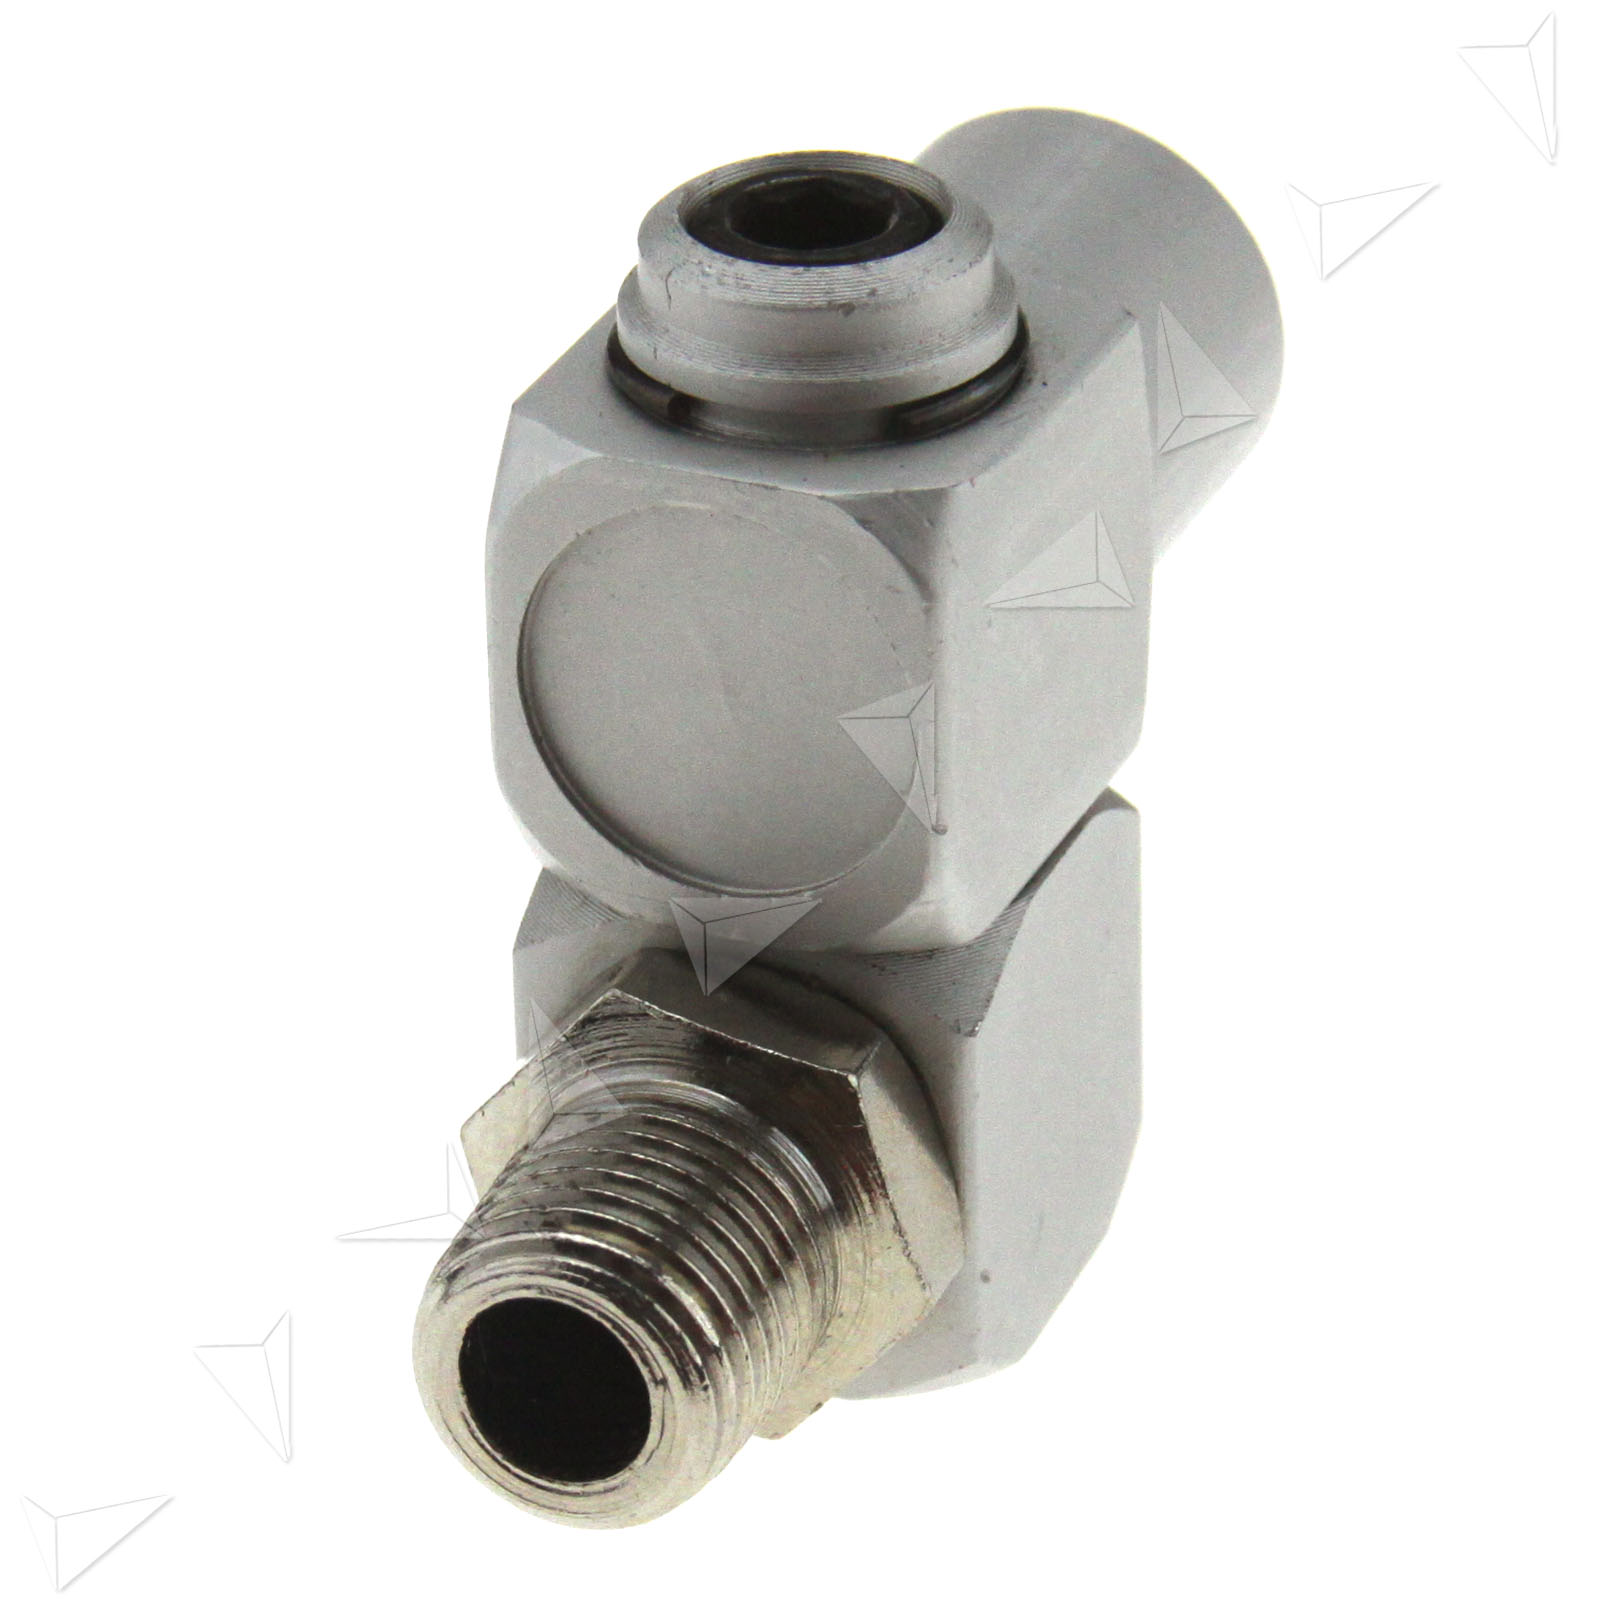 Quot bsp air hose swivel degree fitting connector